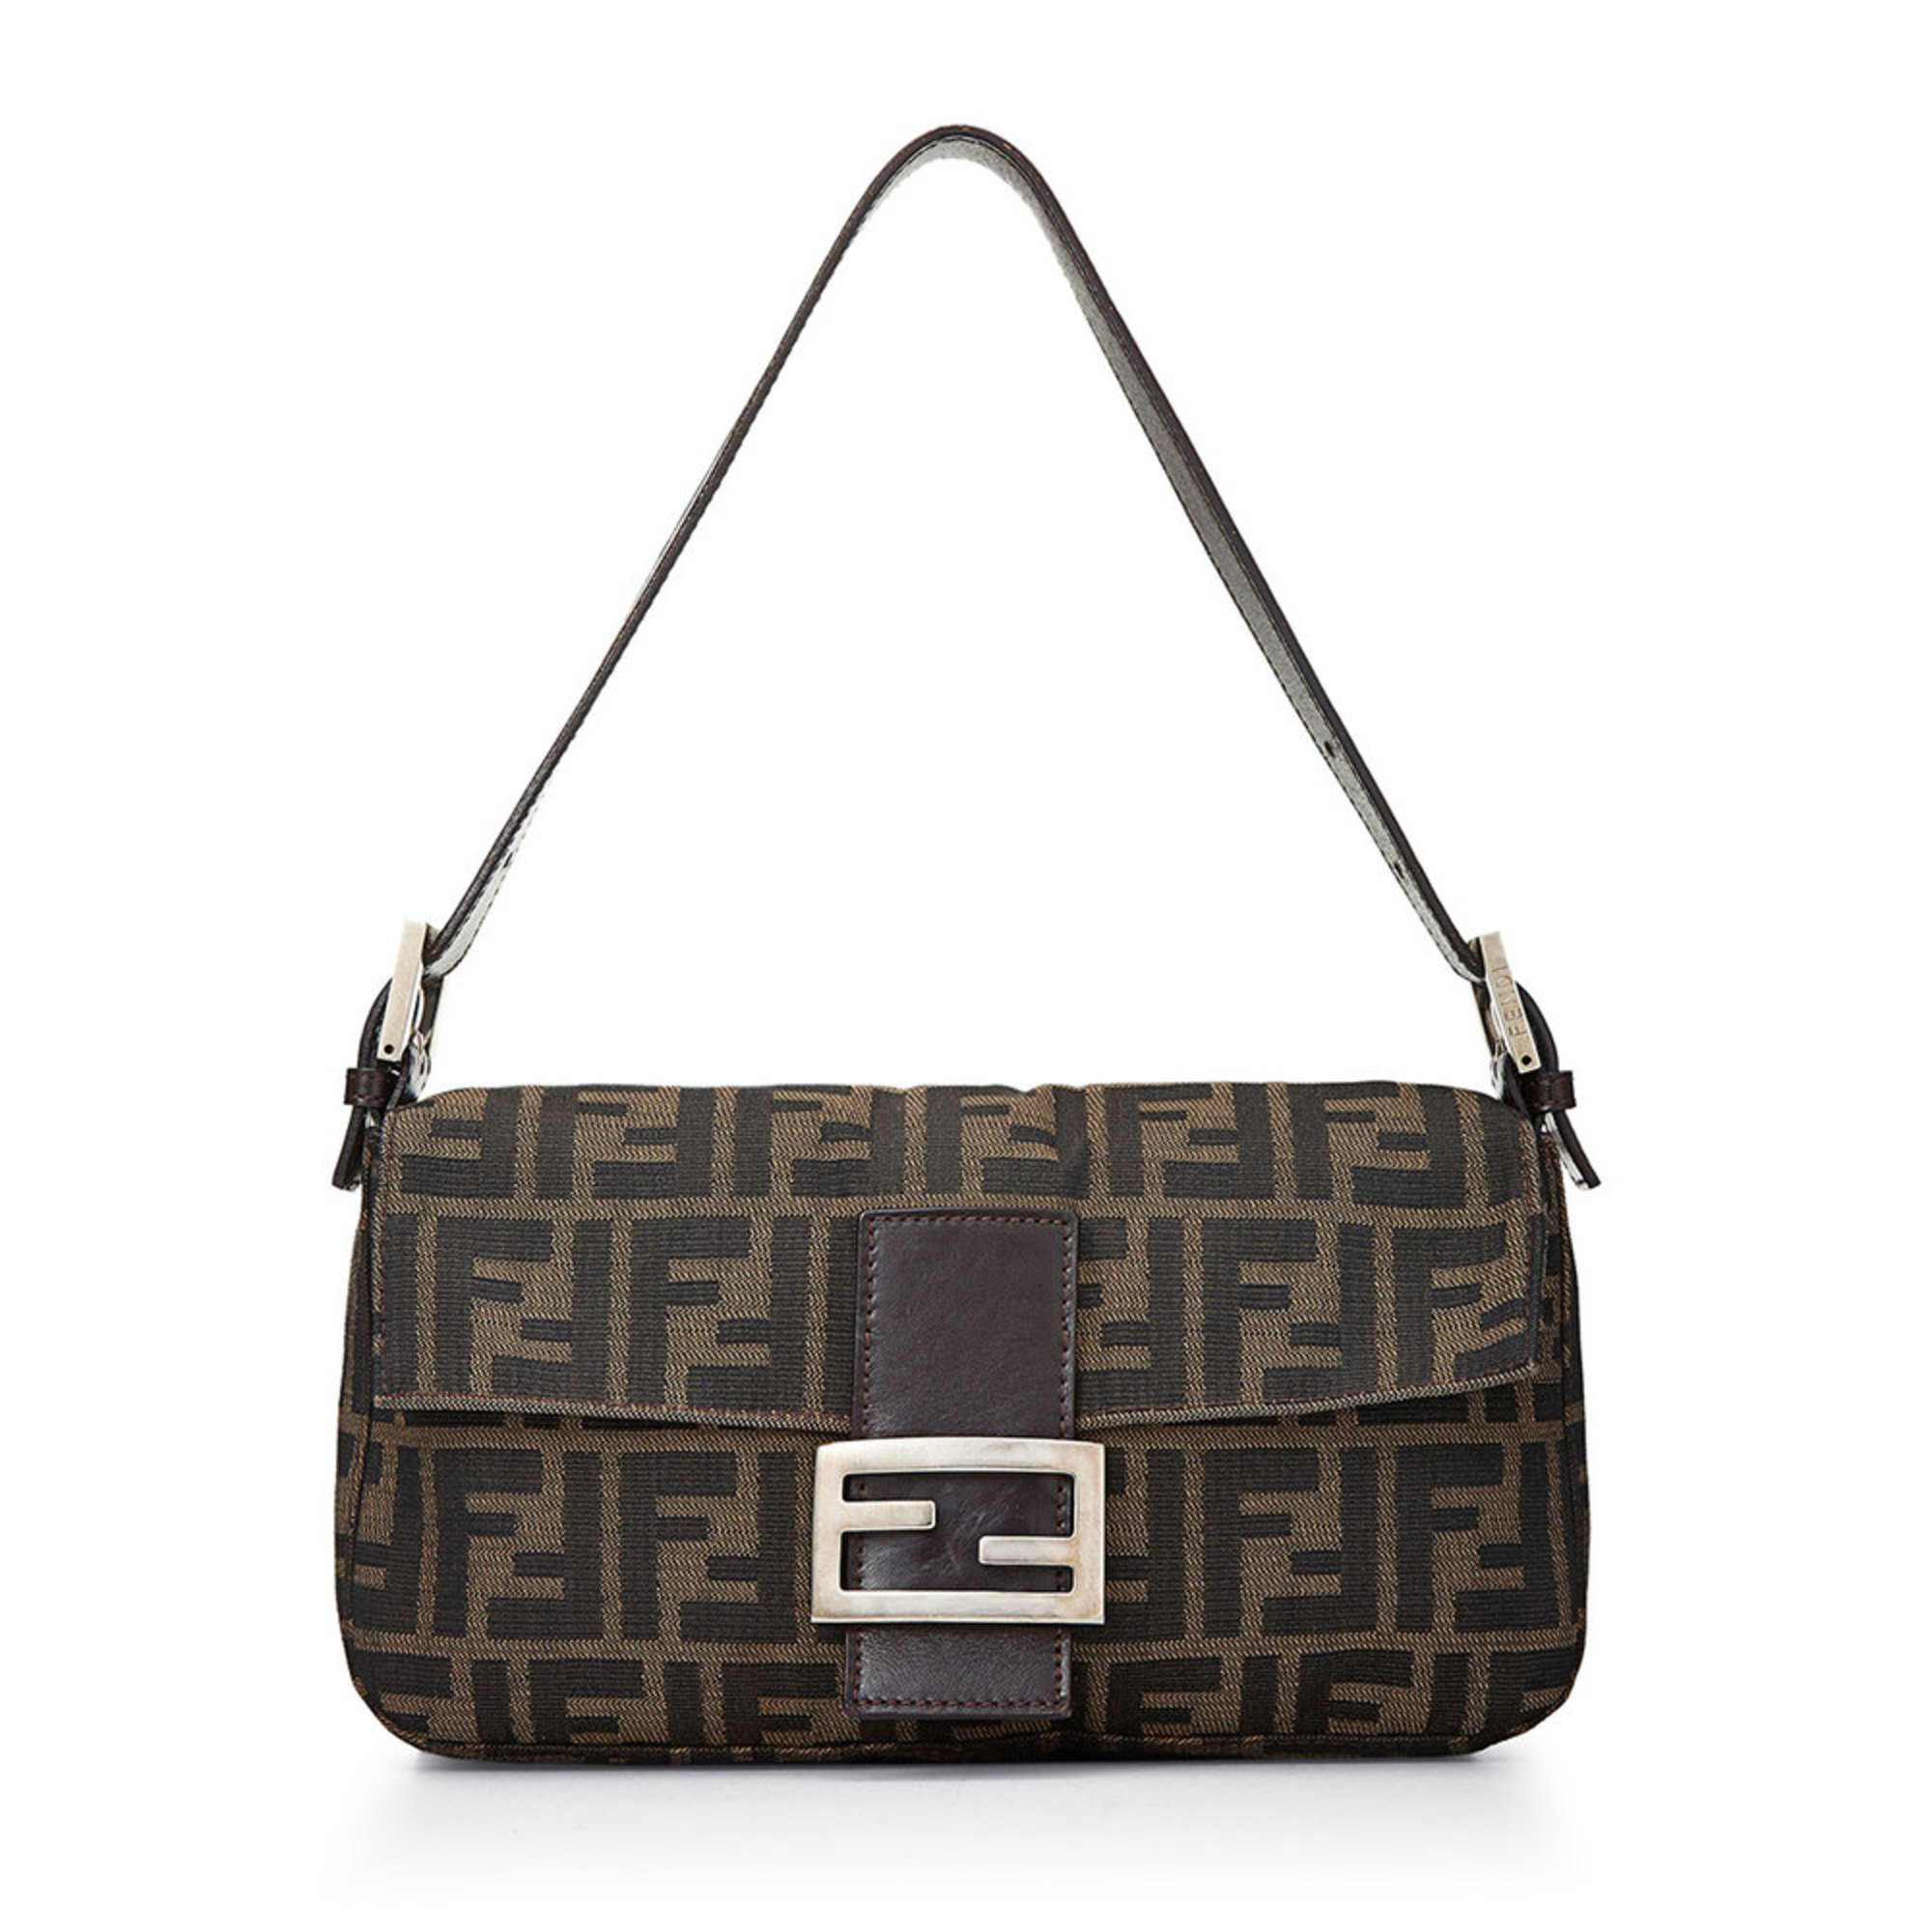 371de35f18 Fendi Zucca Baguette Brown | Shoulder Bags | Handbags & Sunglasses ...